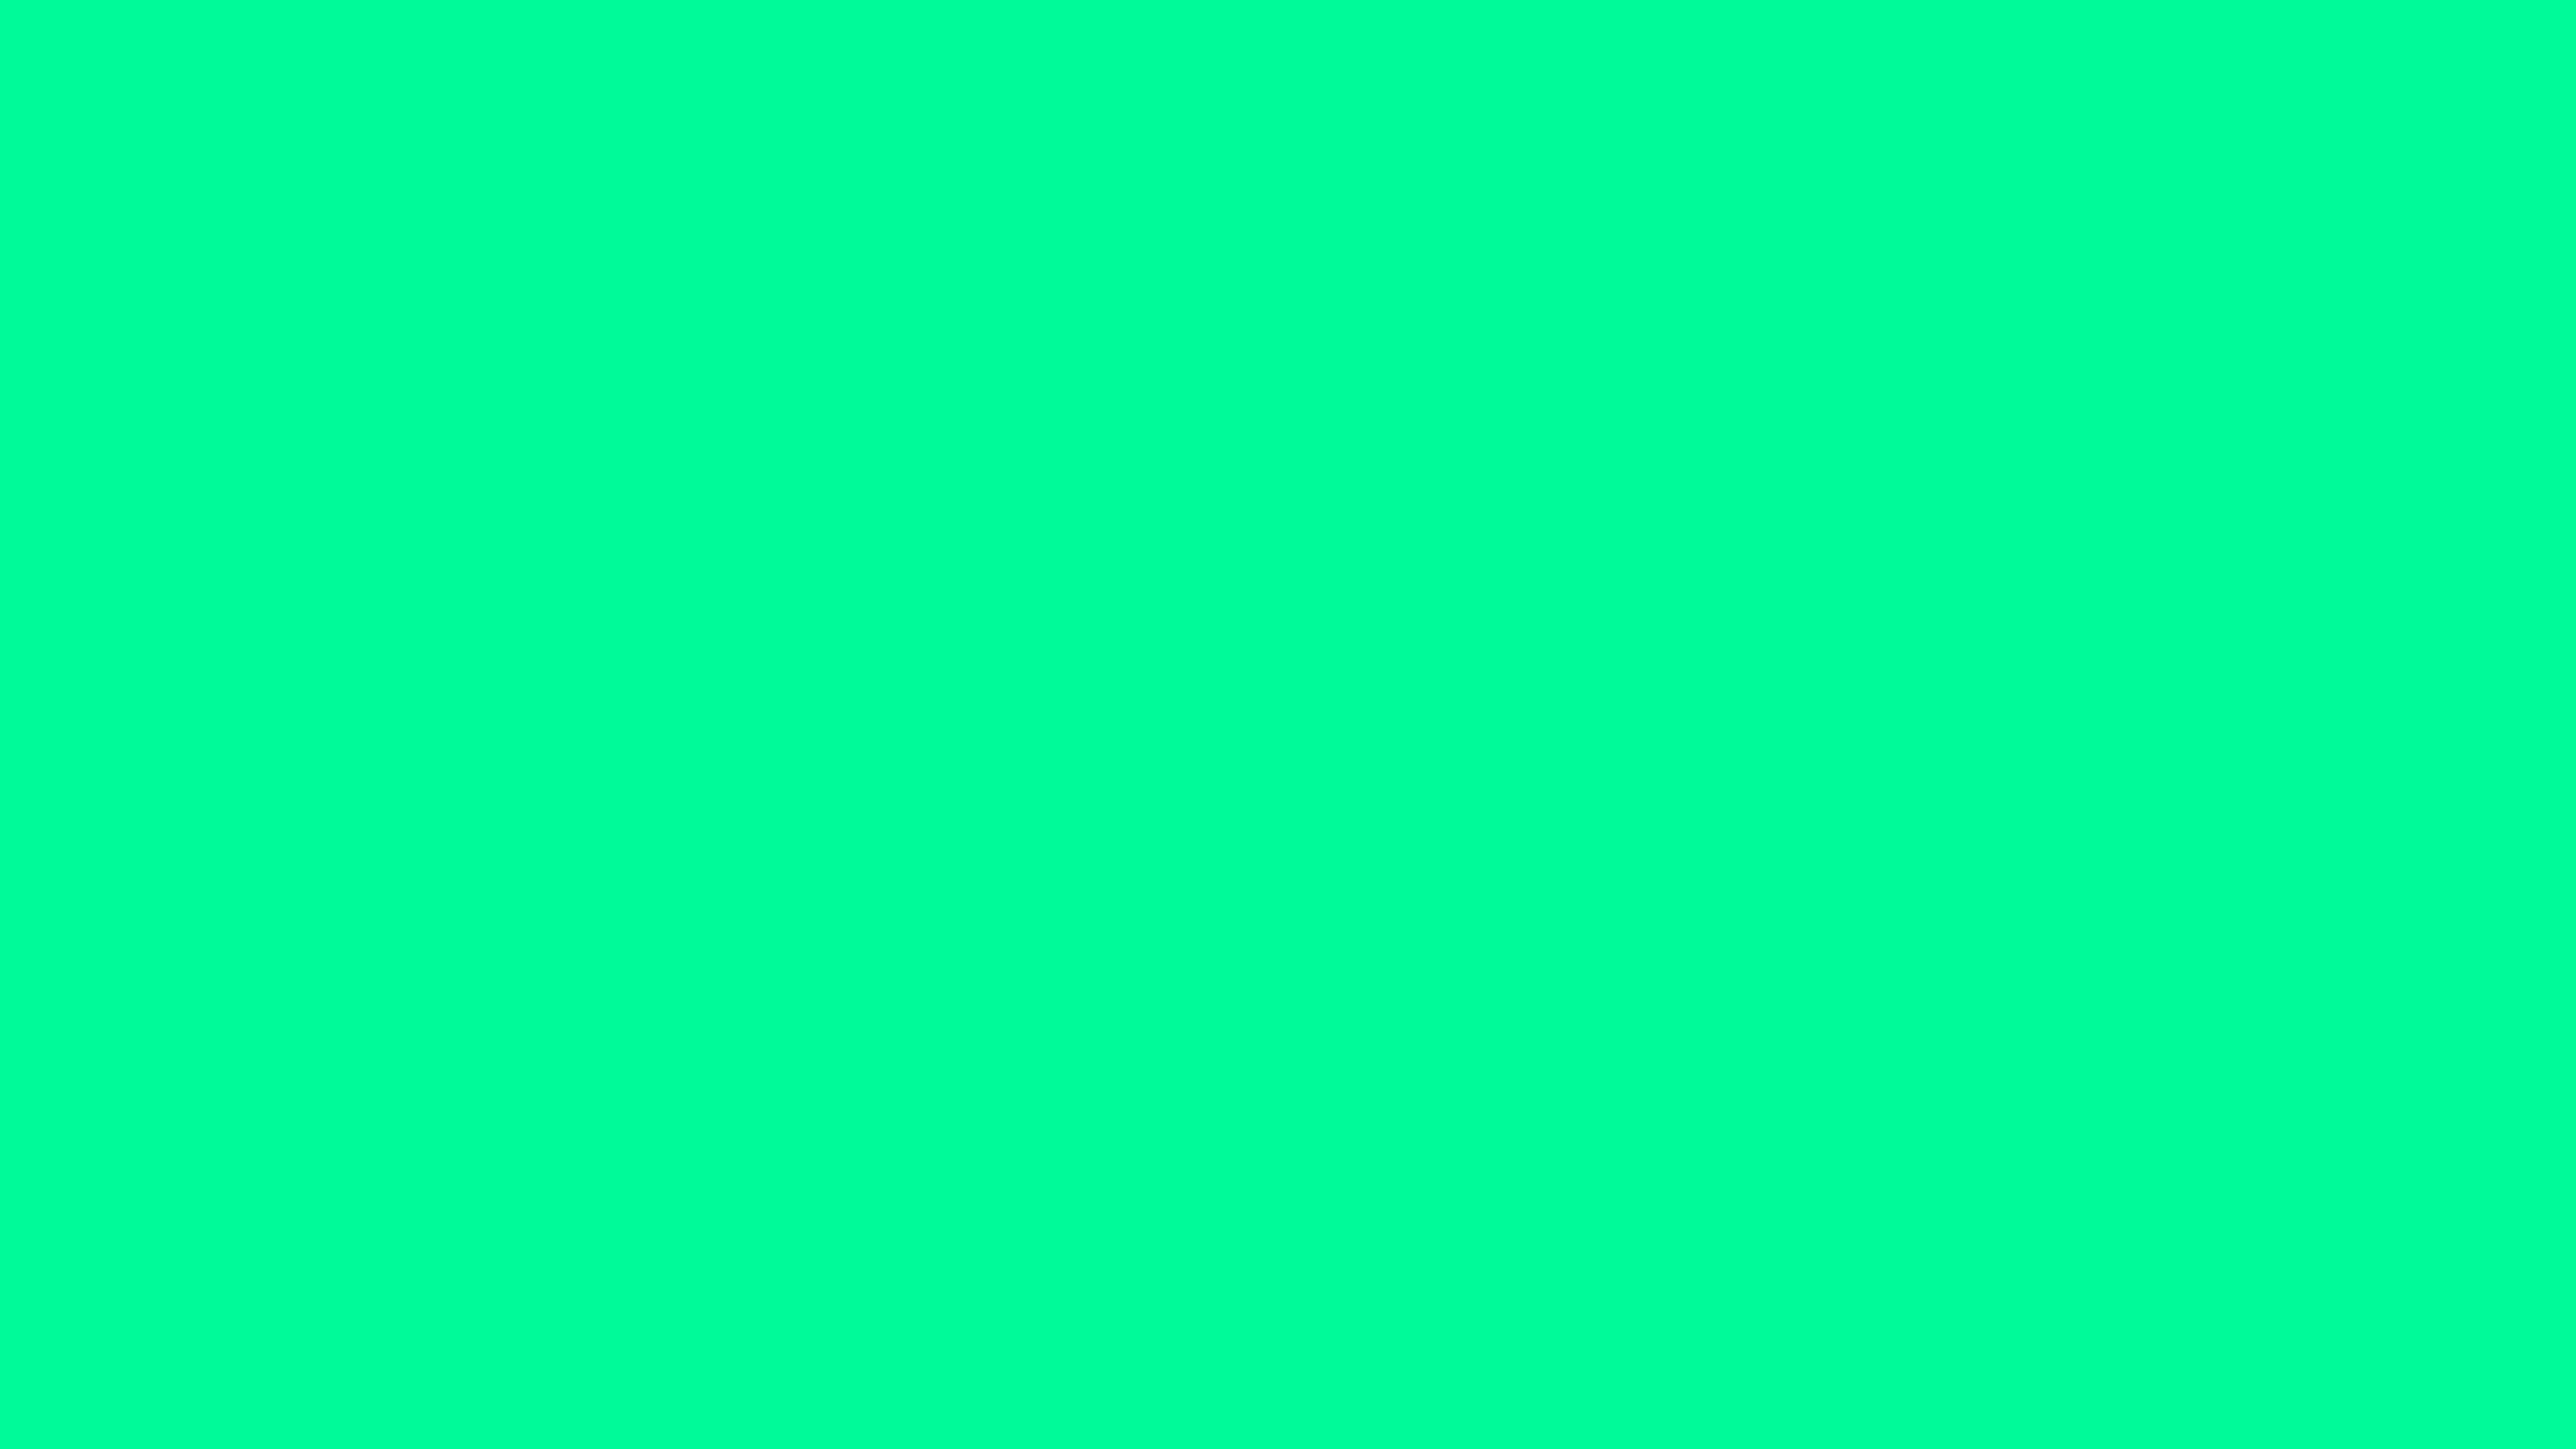 5120x2880 Medium Spring Green Solid Color Background